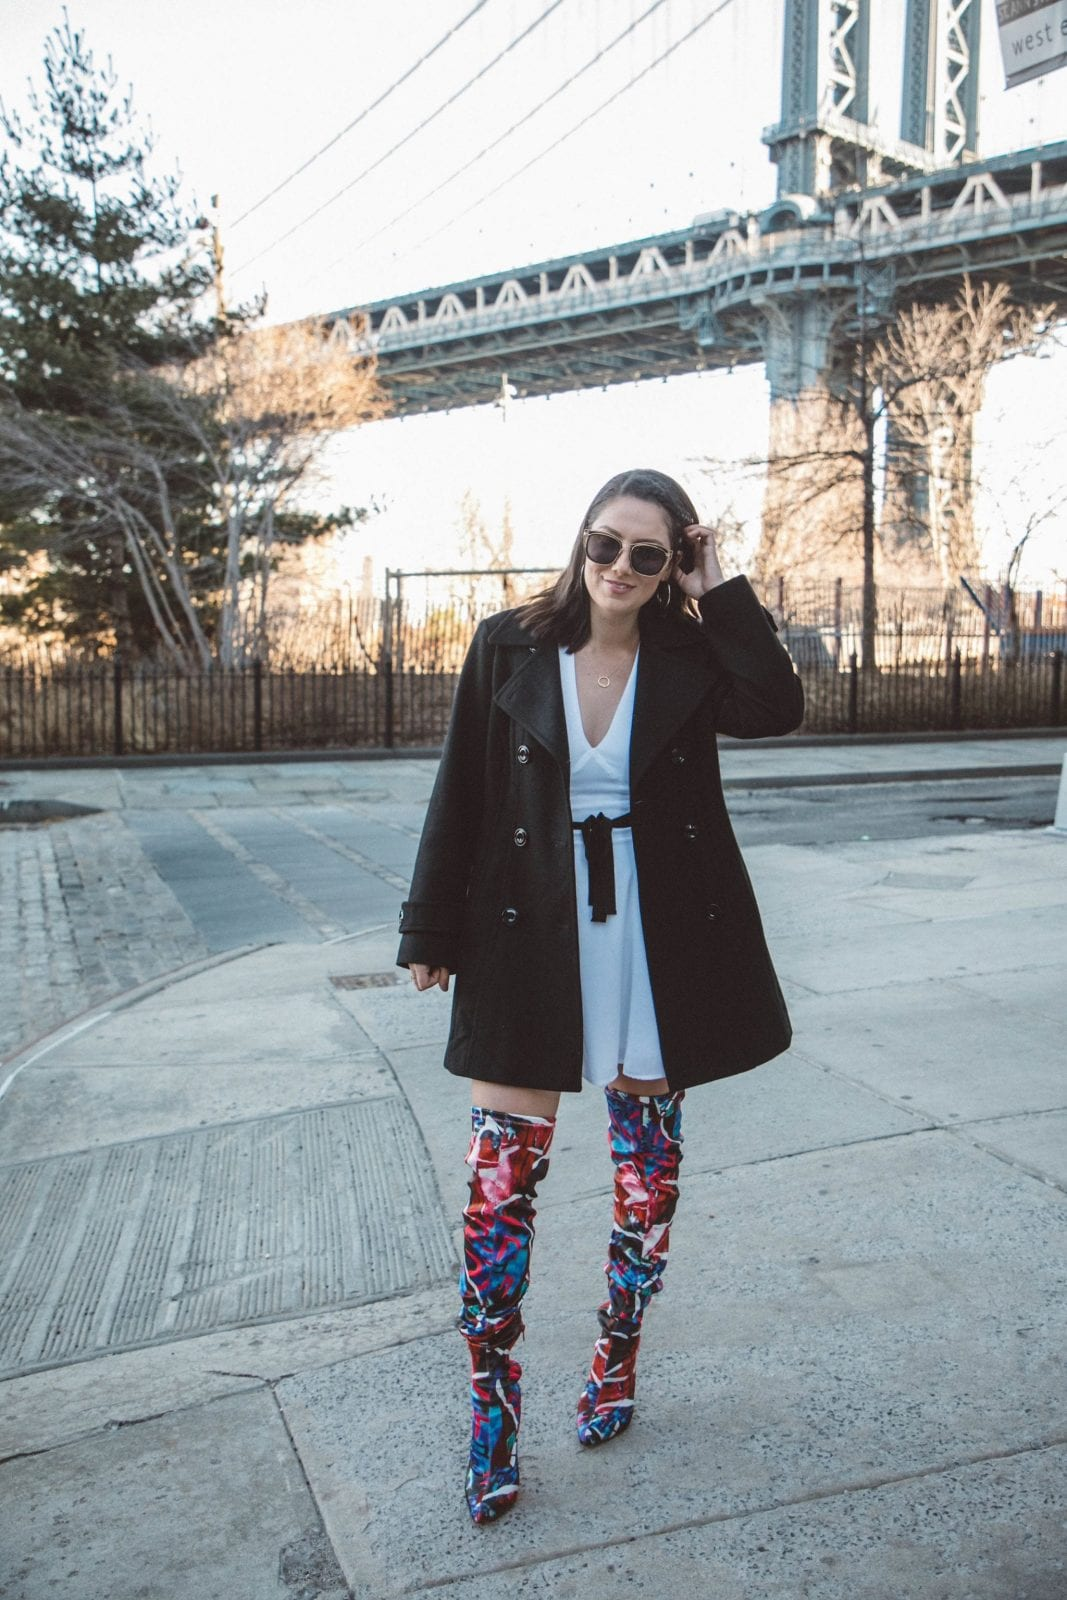 This is a photo of me standing outside in Dumbo, Brooklyn in my nighttime outfit.